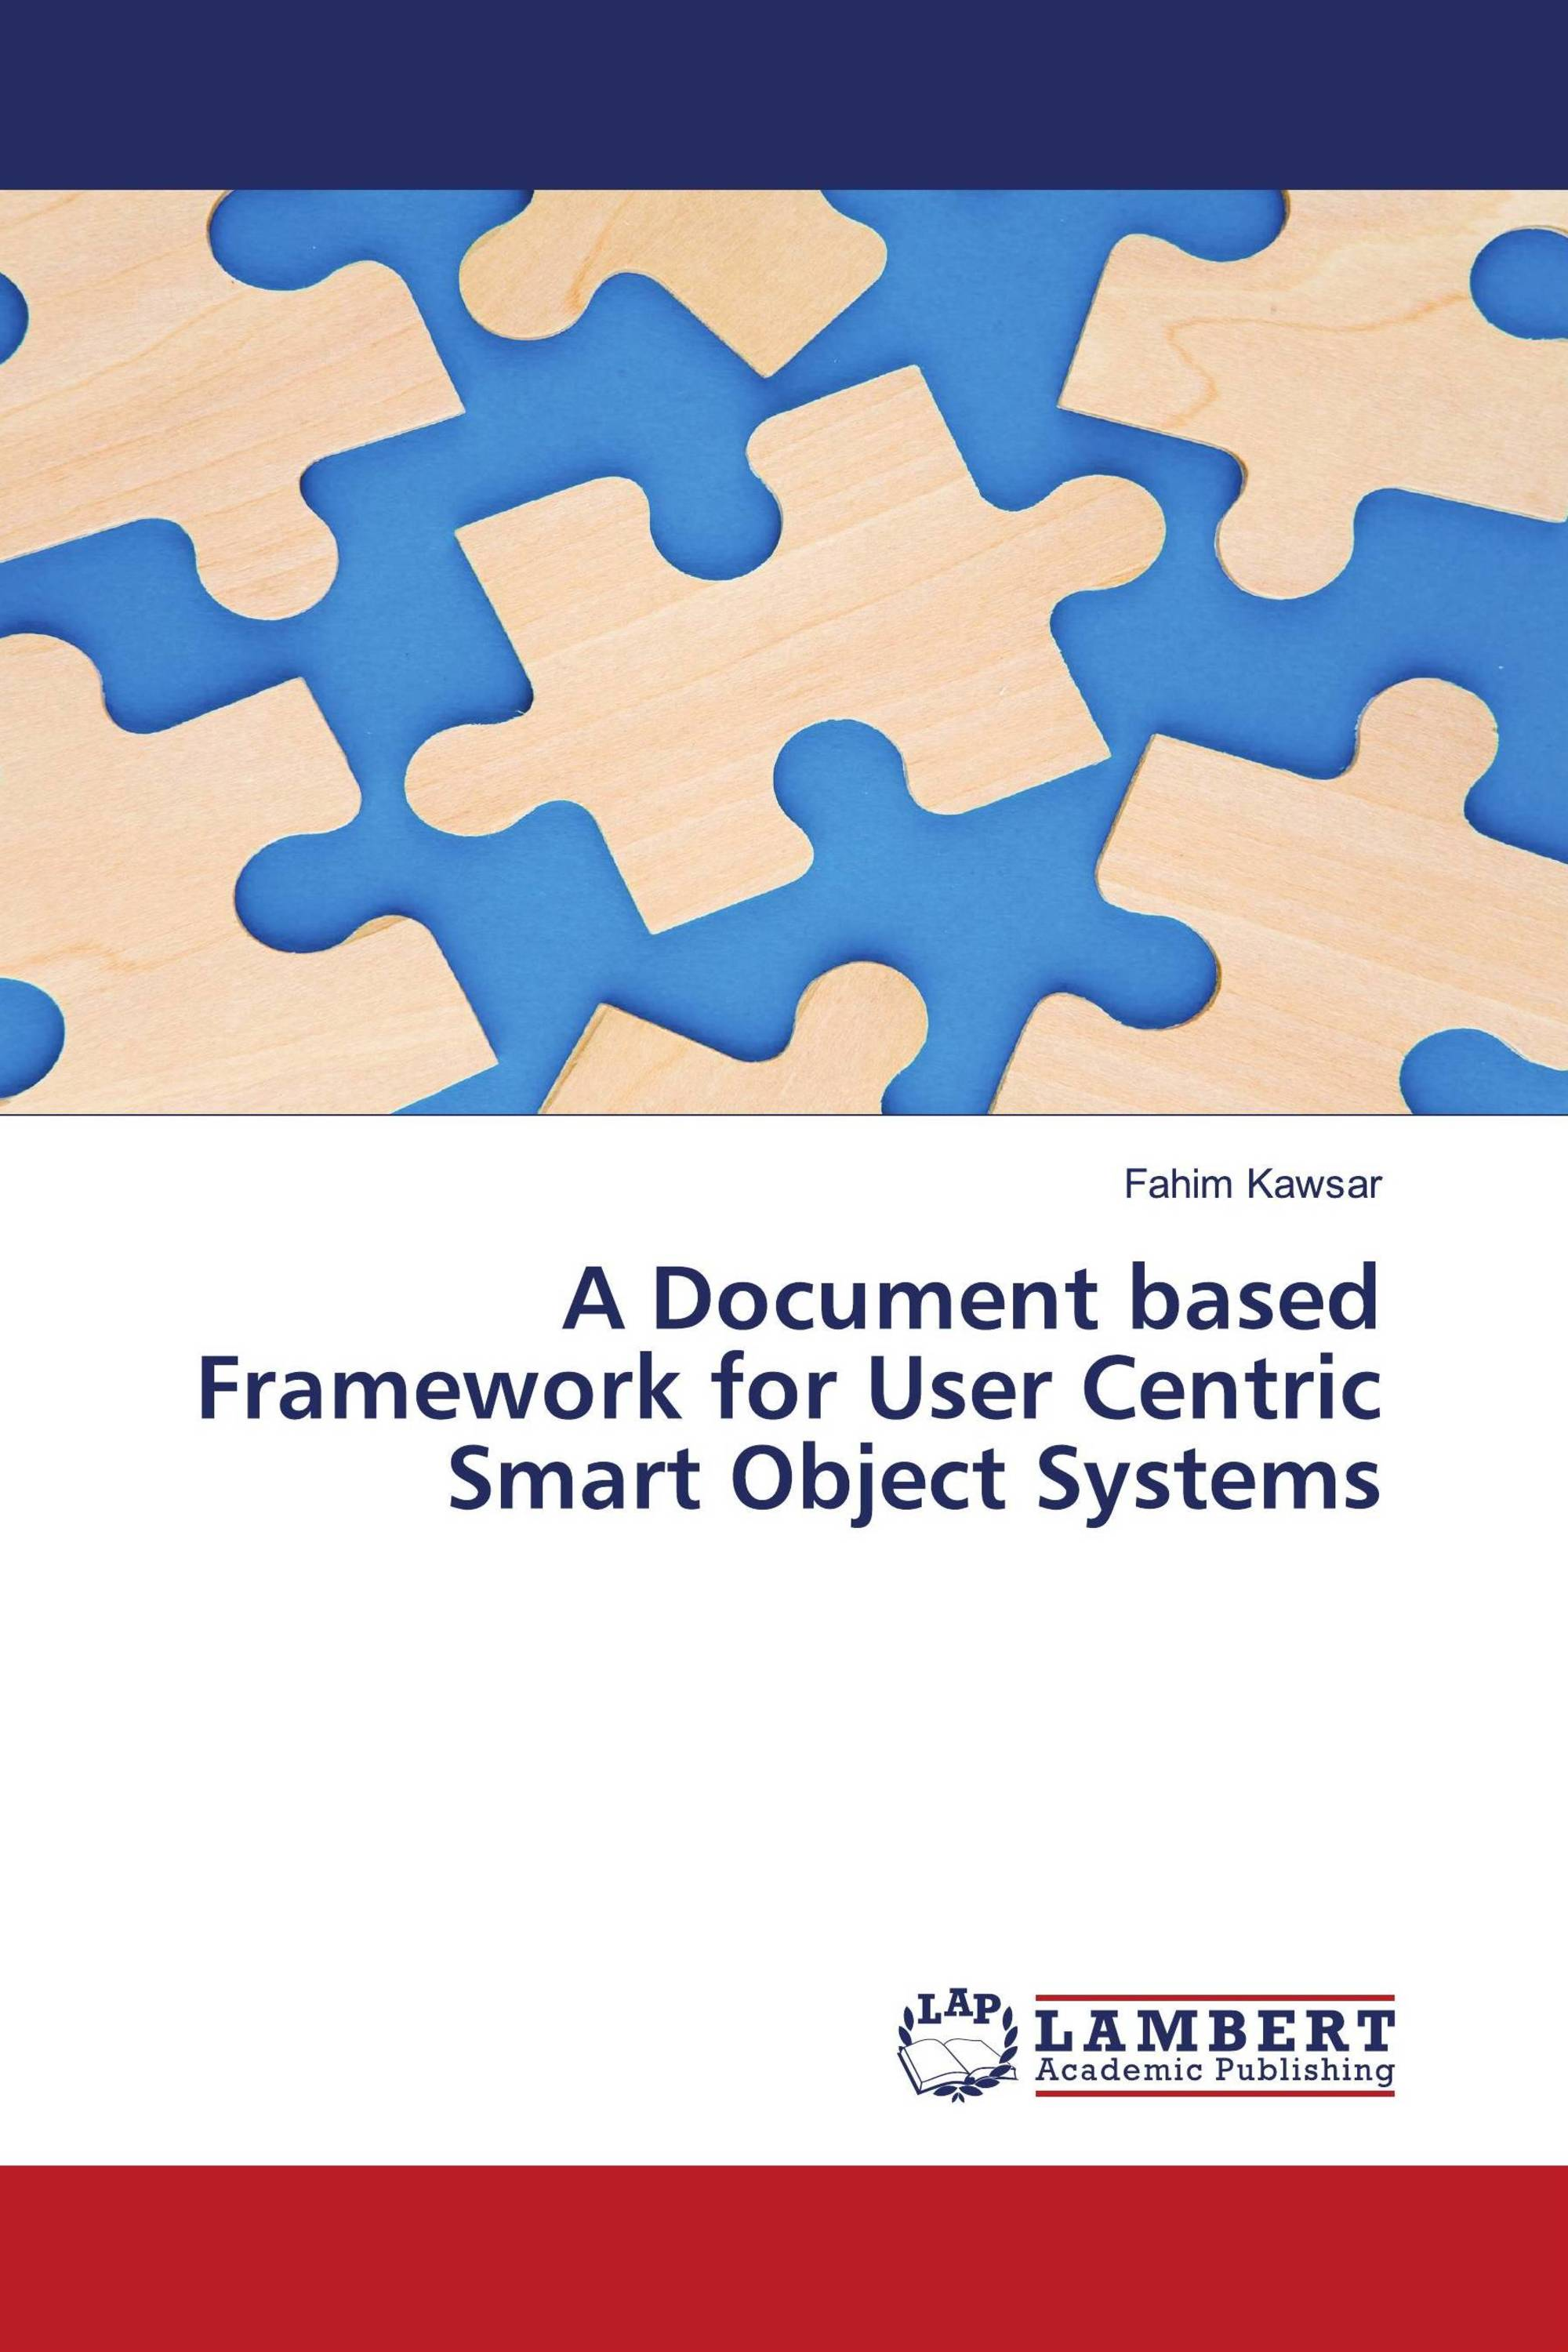 A Document based Framework for User Centric Smart Object Systems